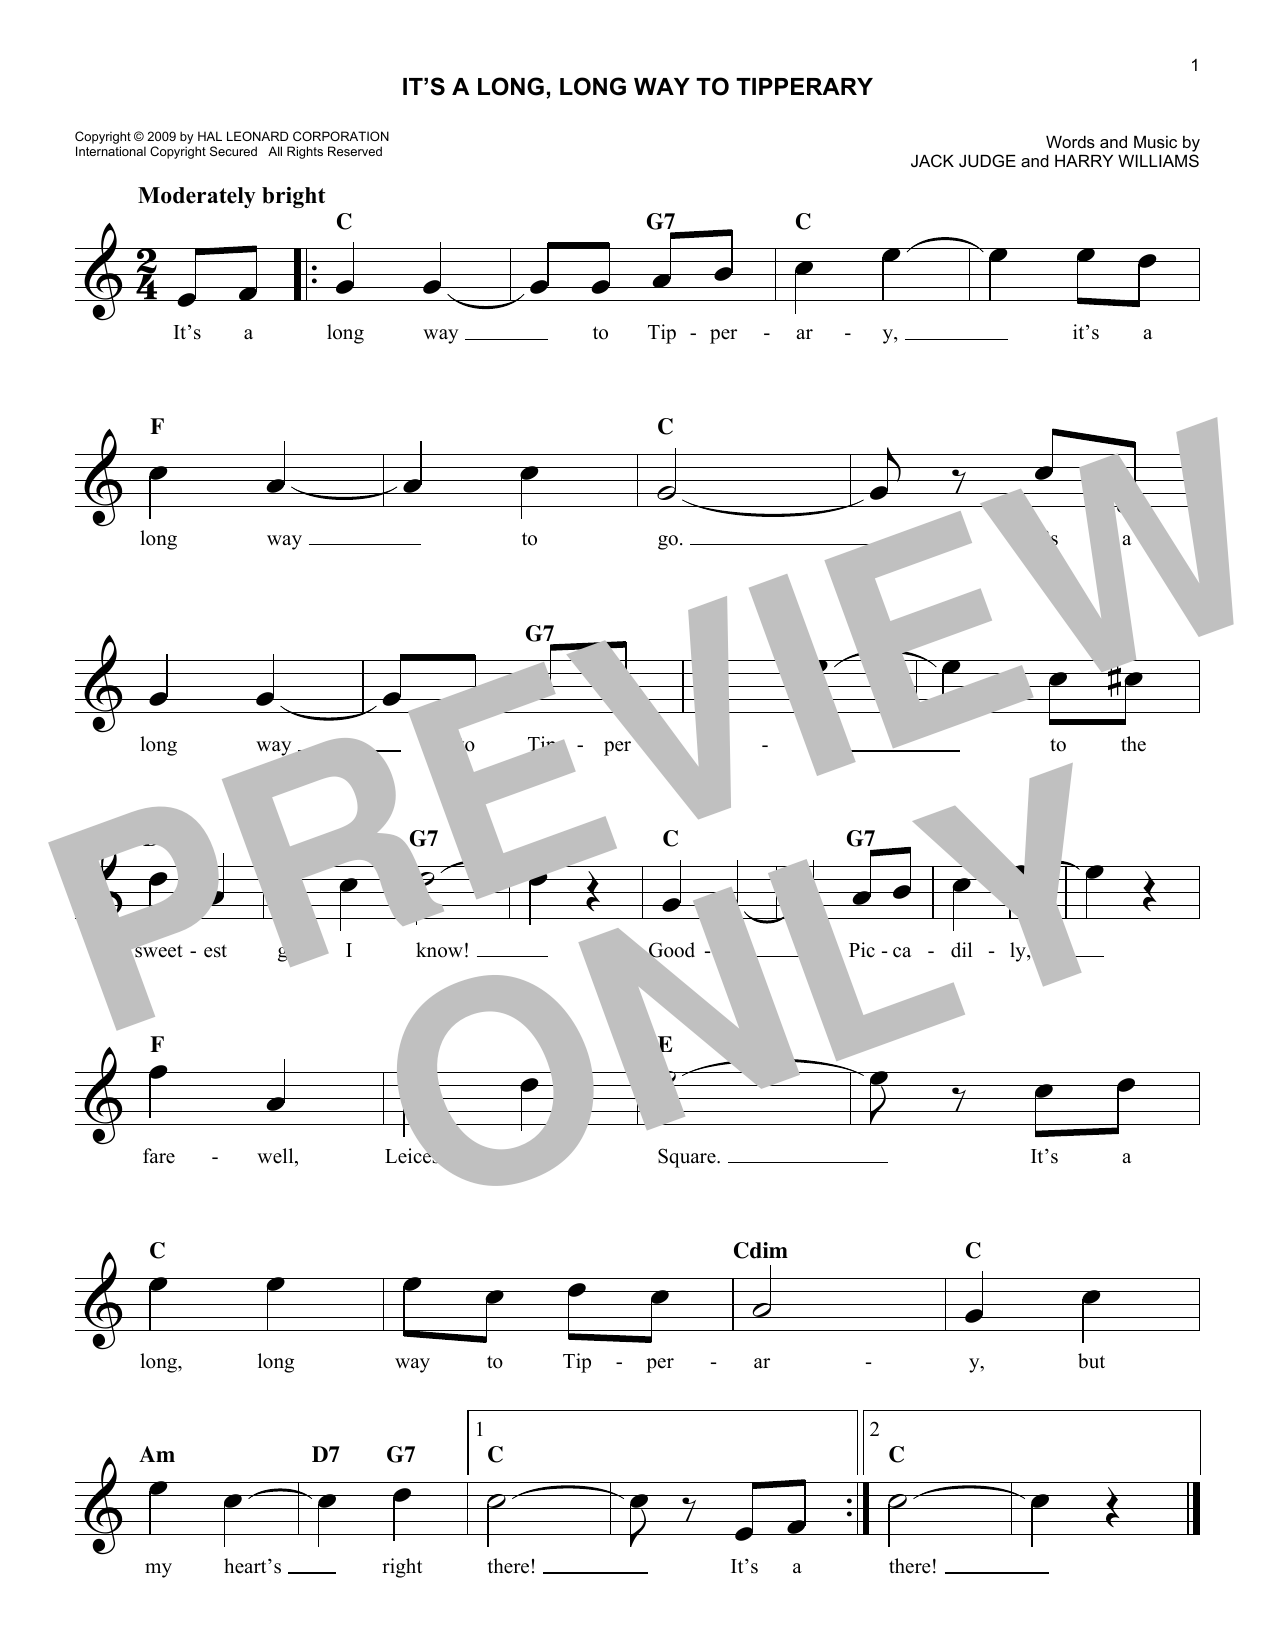 Its a long long way to tipperary chords by jack judge melody its a long long way to tipperary sheet music hexwebz Images